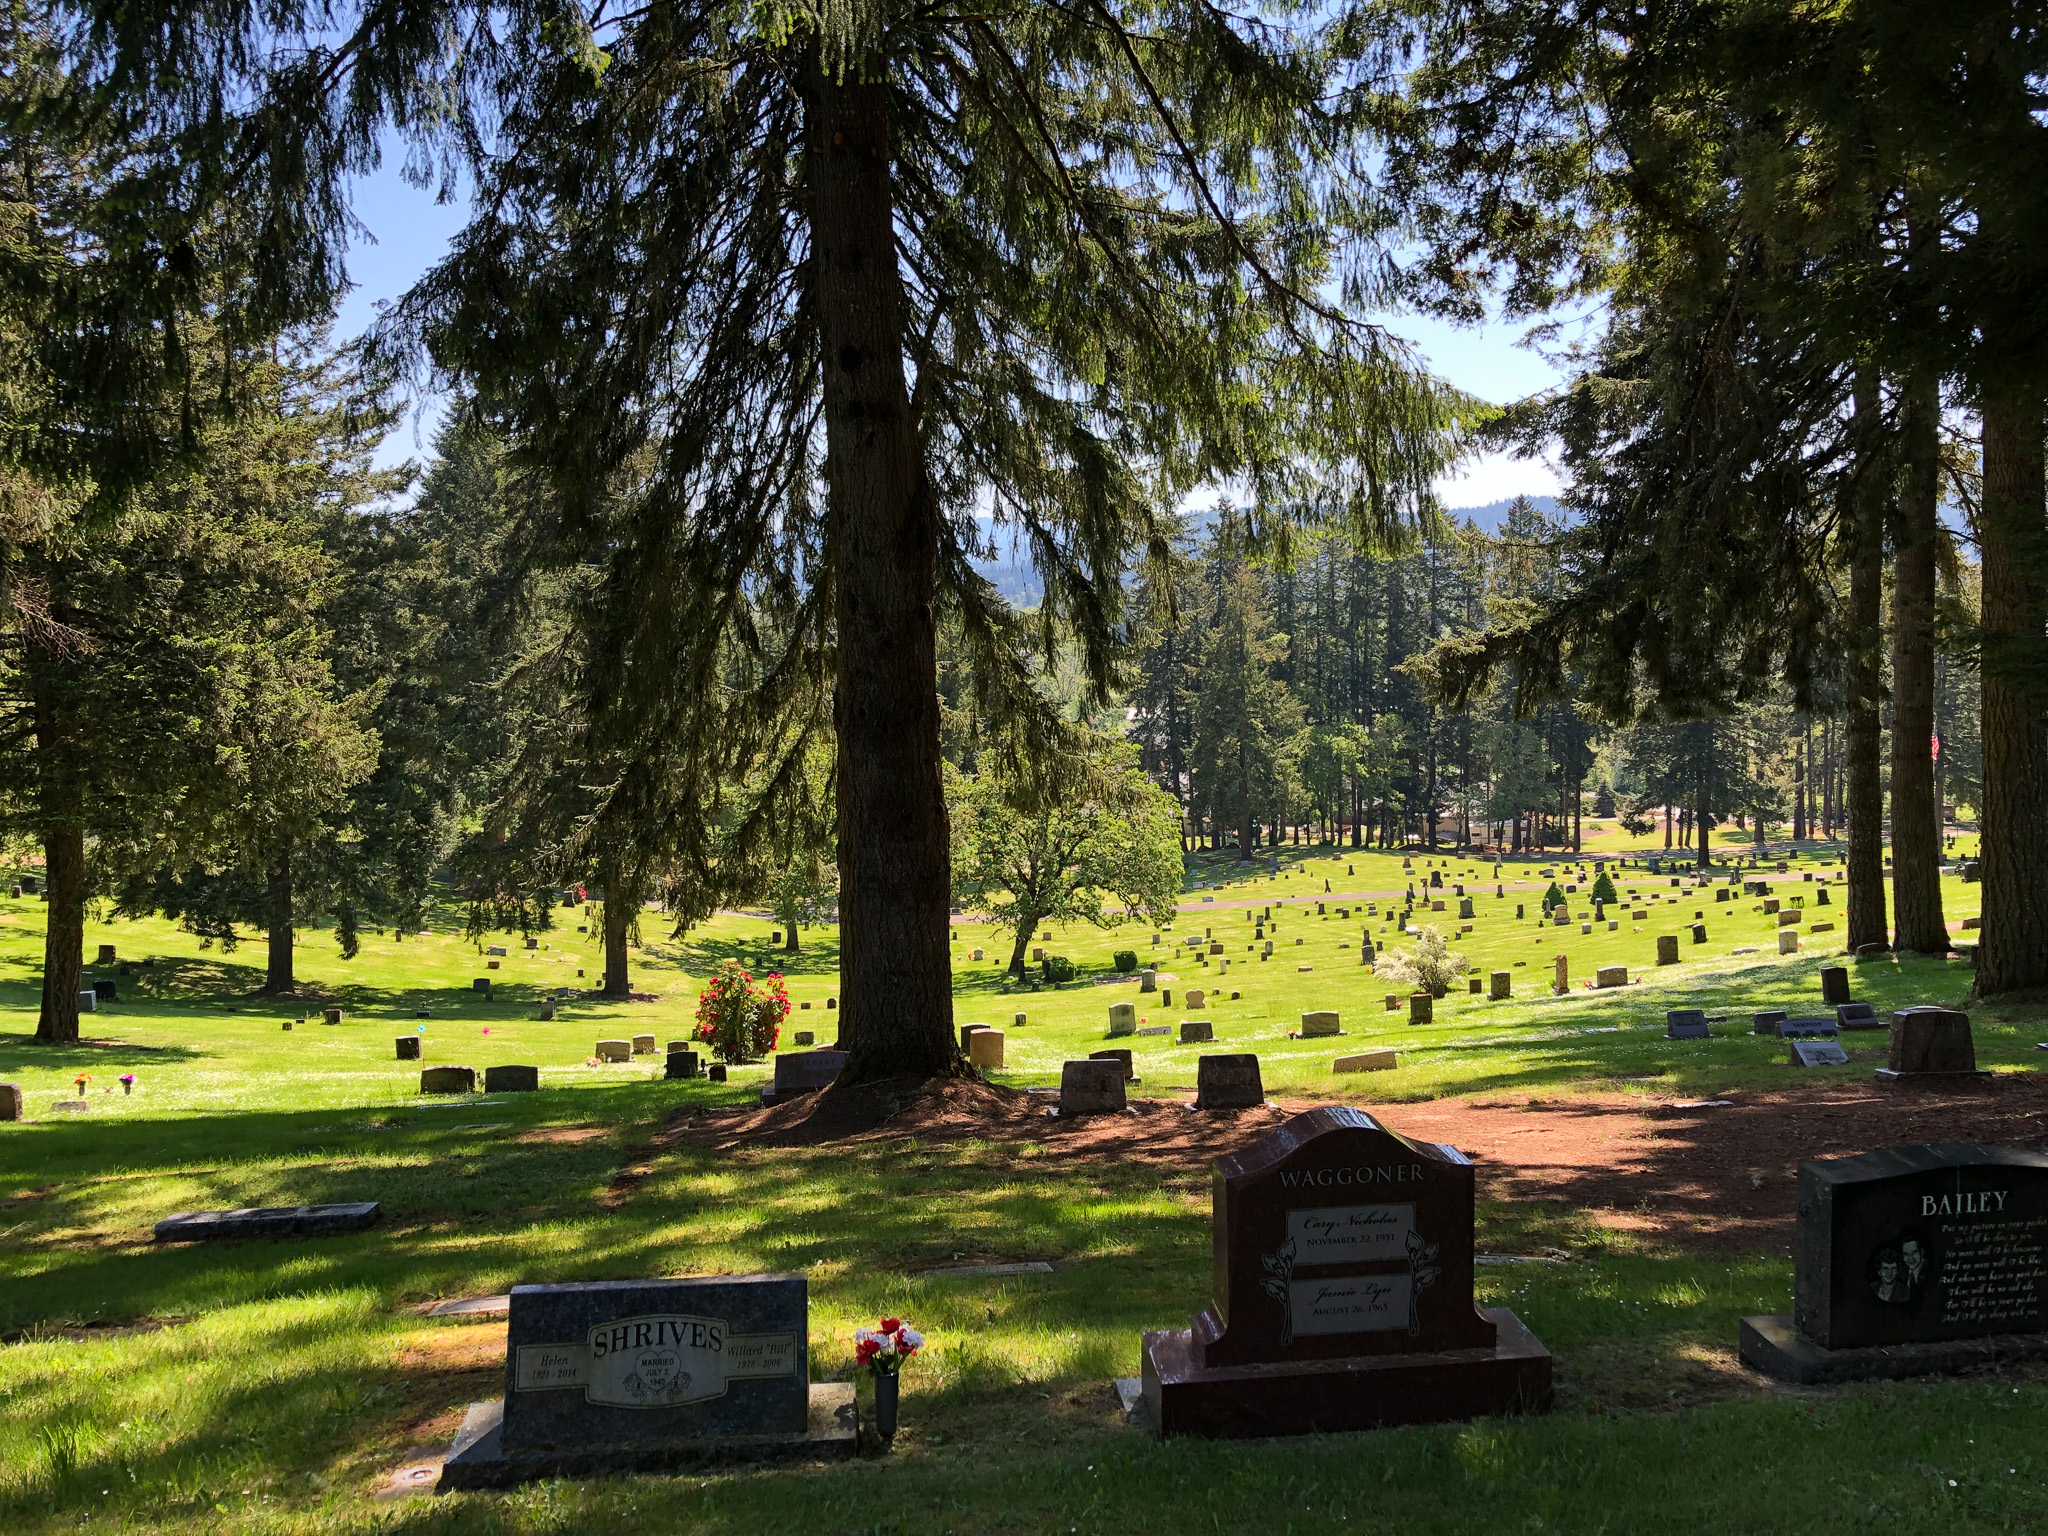 trees and graves at fir grove cemetery